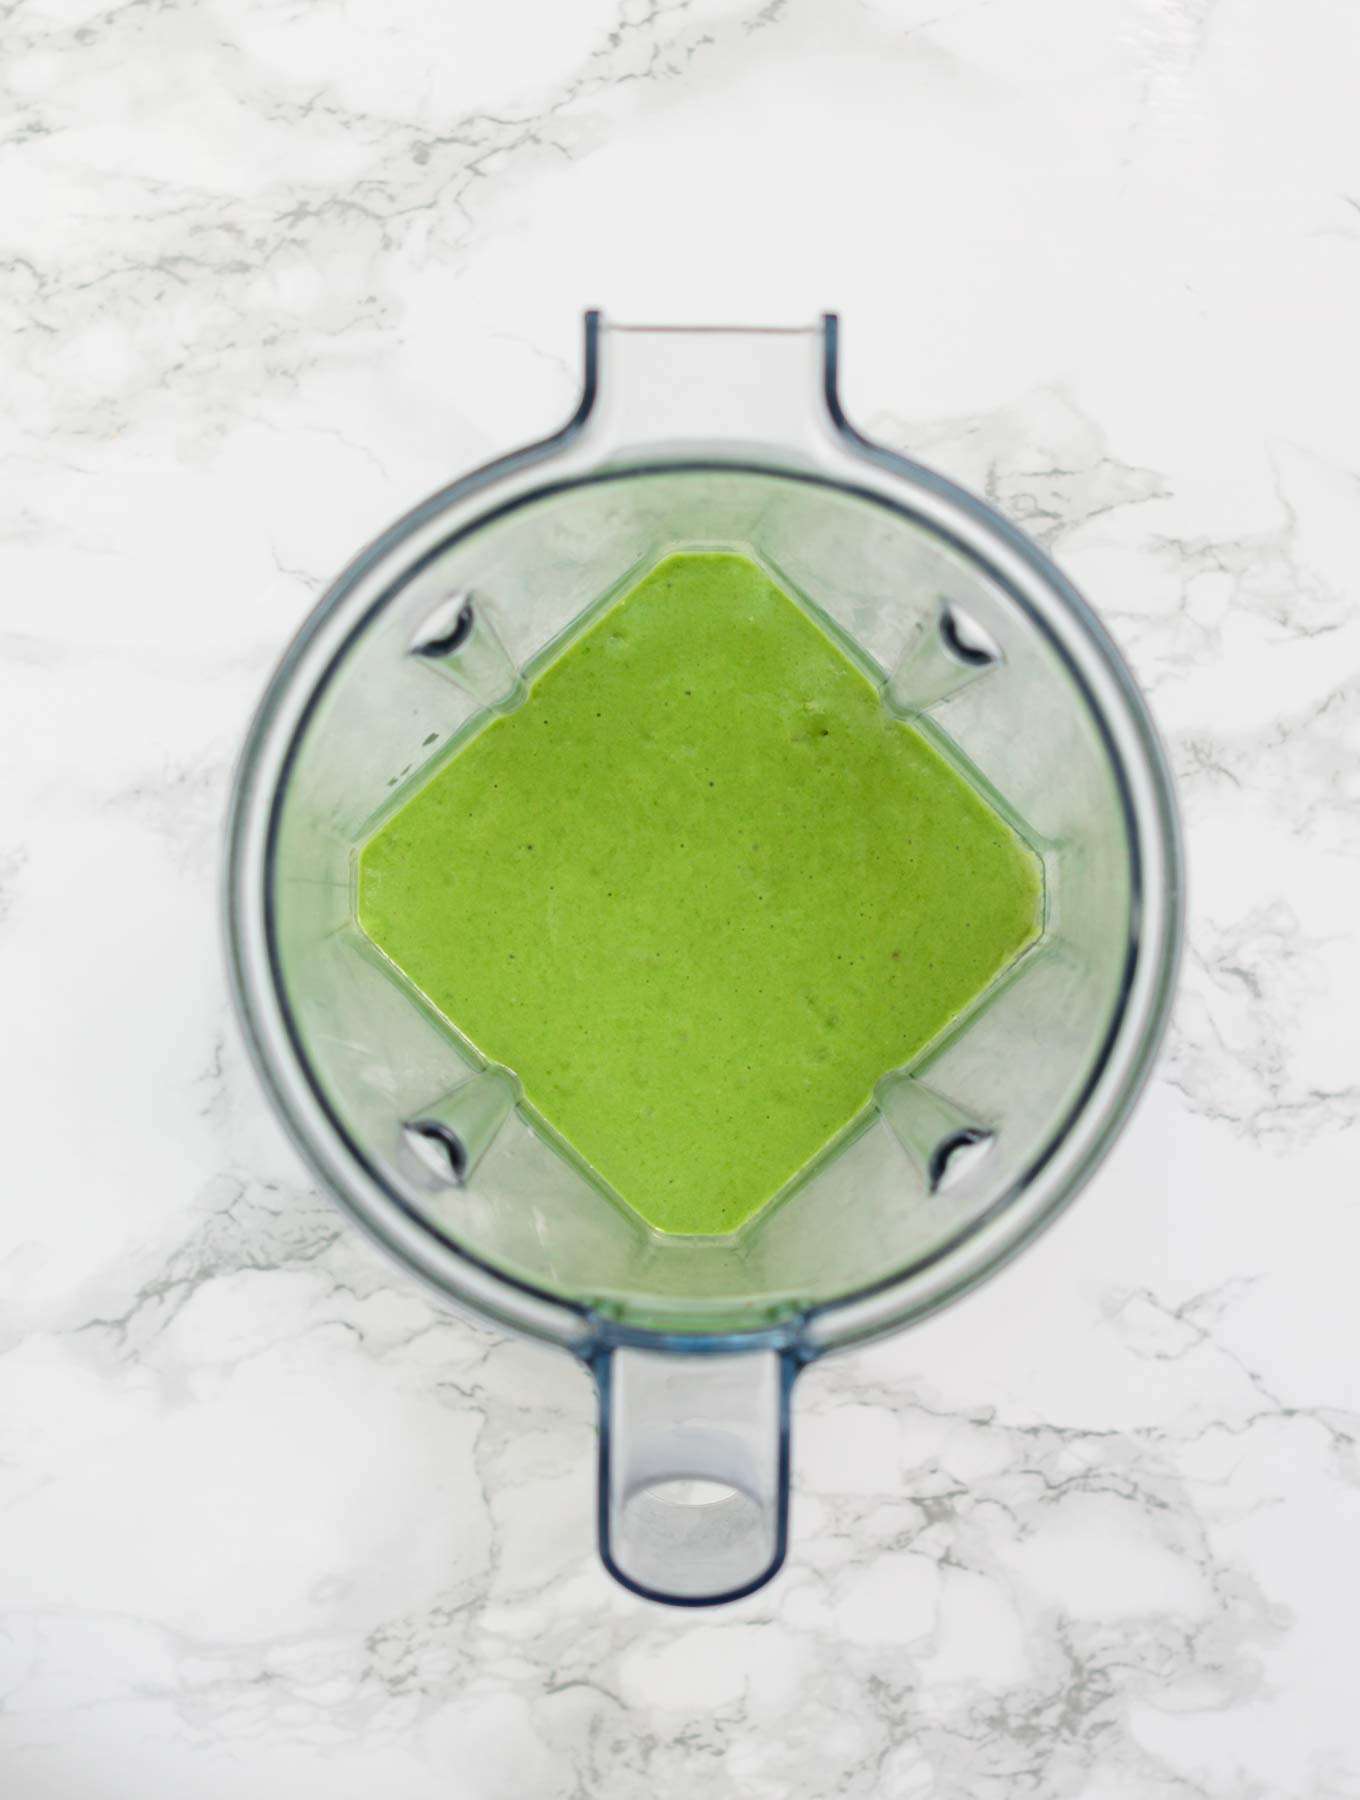 Blended green smoothie in blender